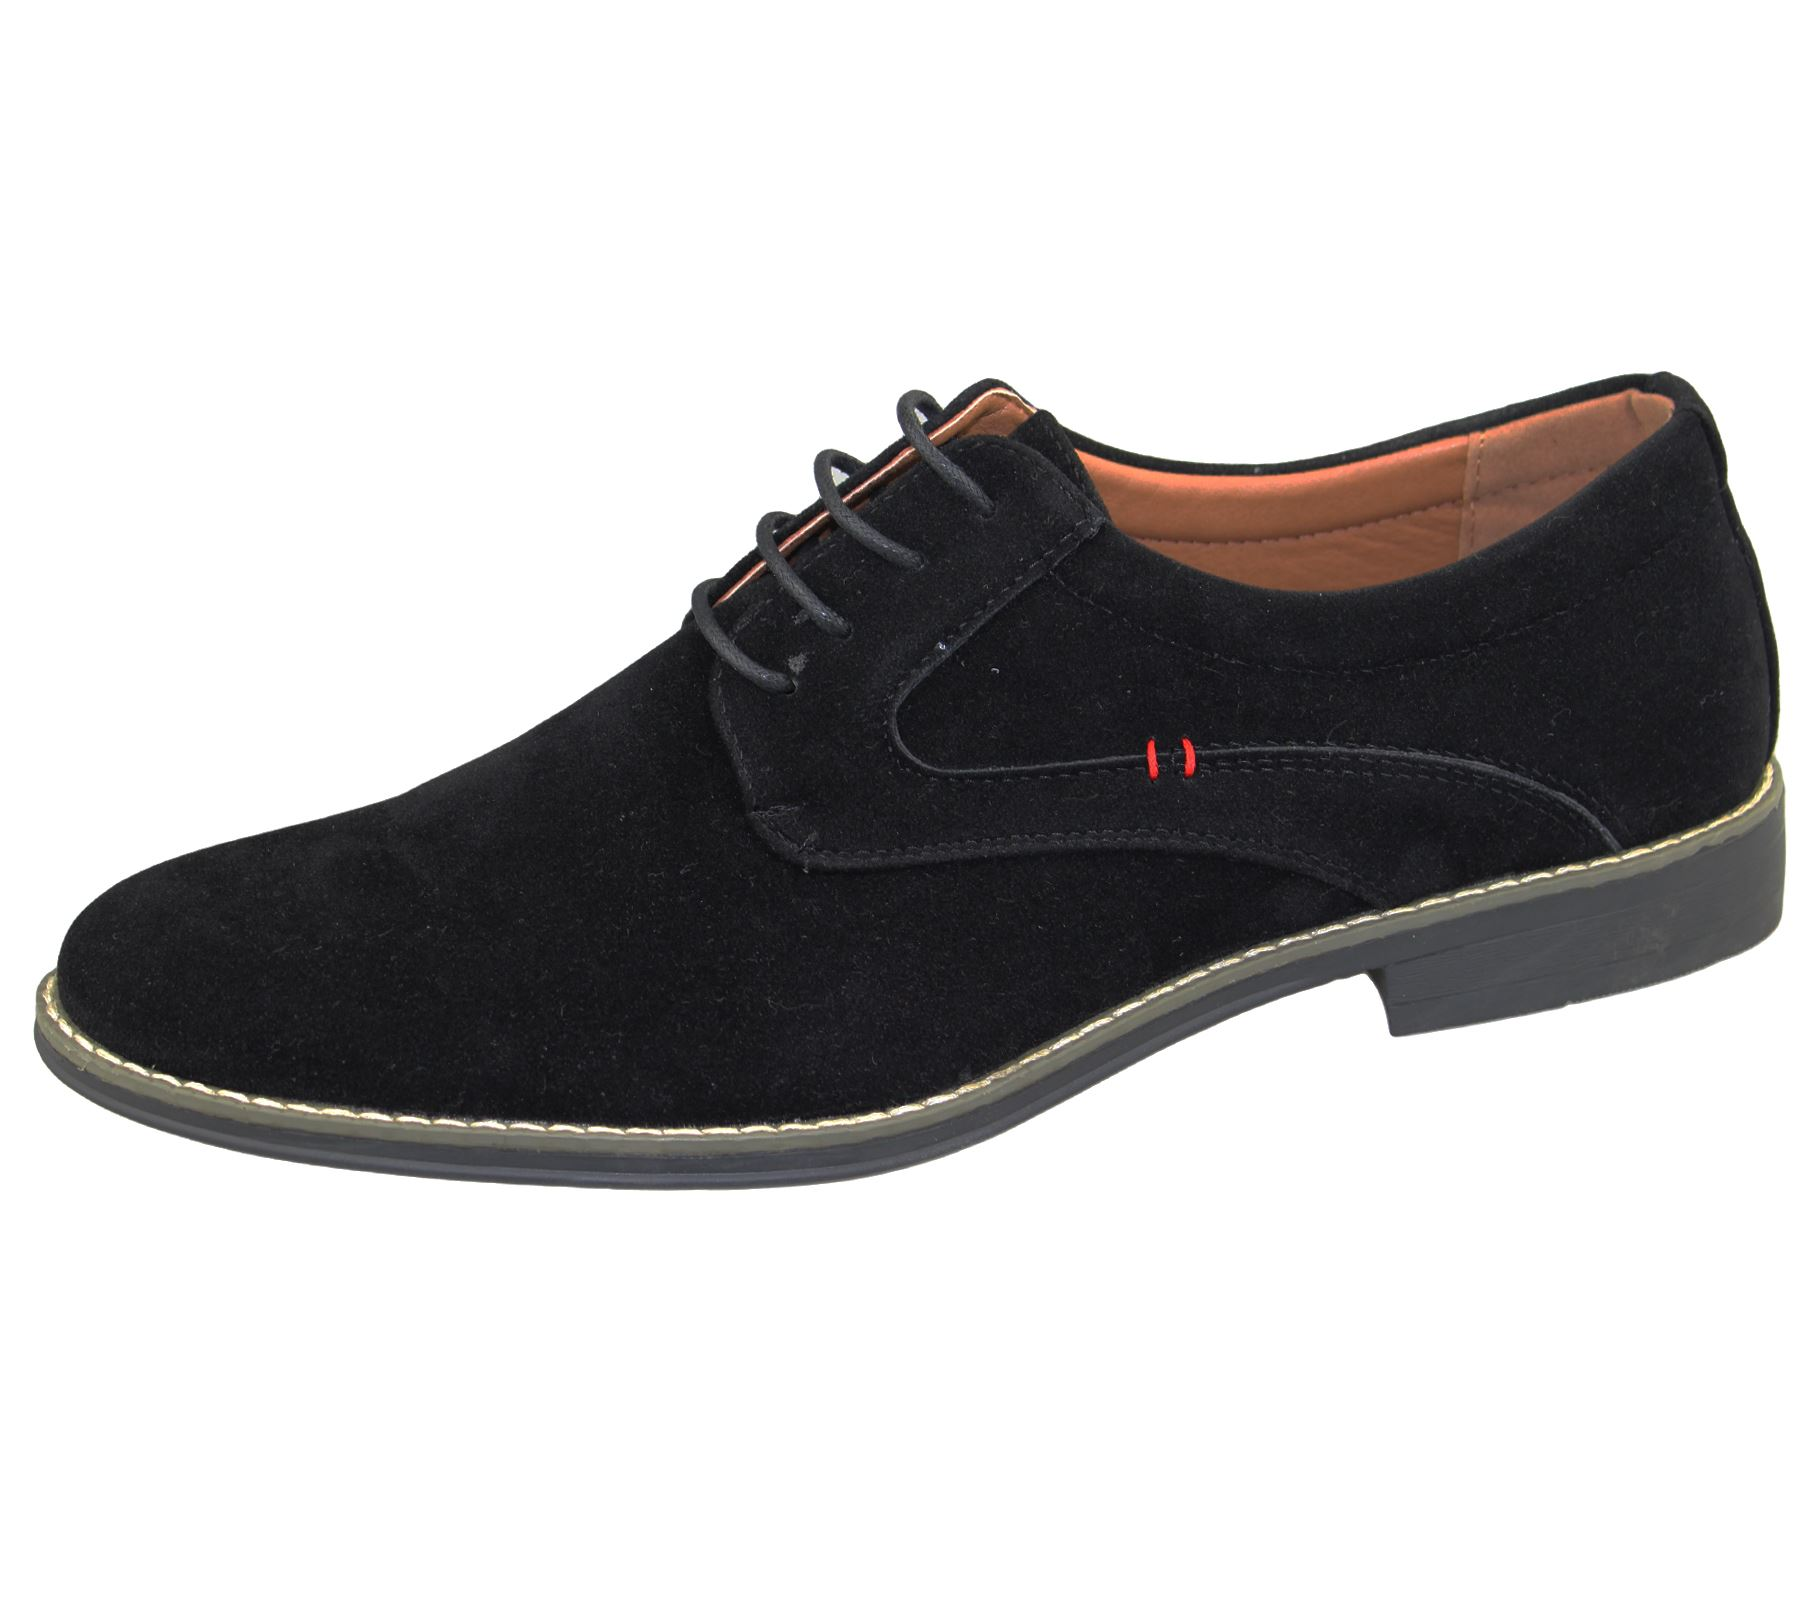 Men's Shoes From Suede For Smart & Casual